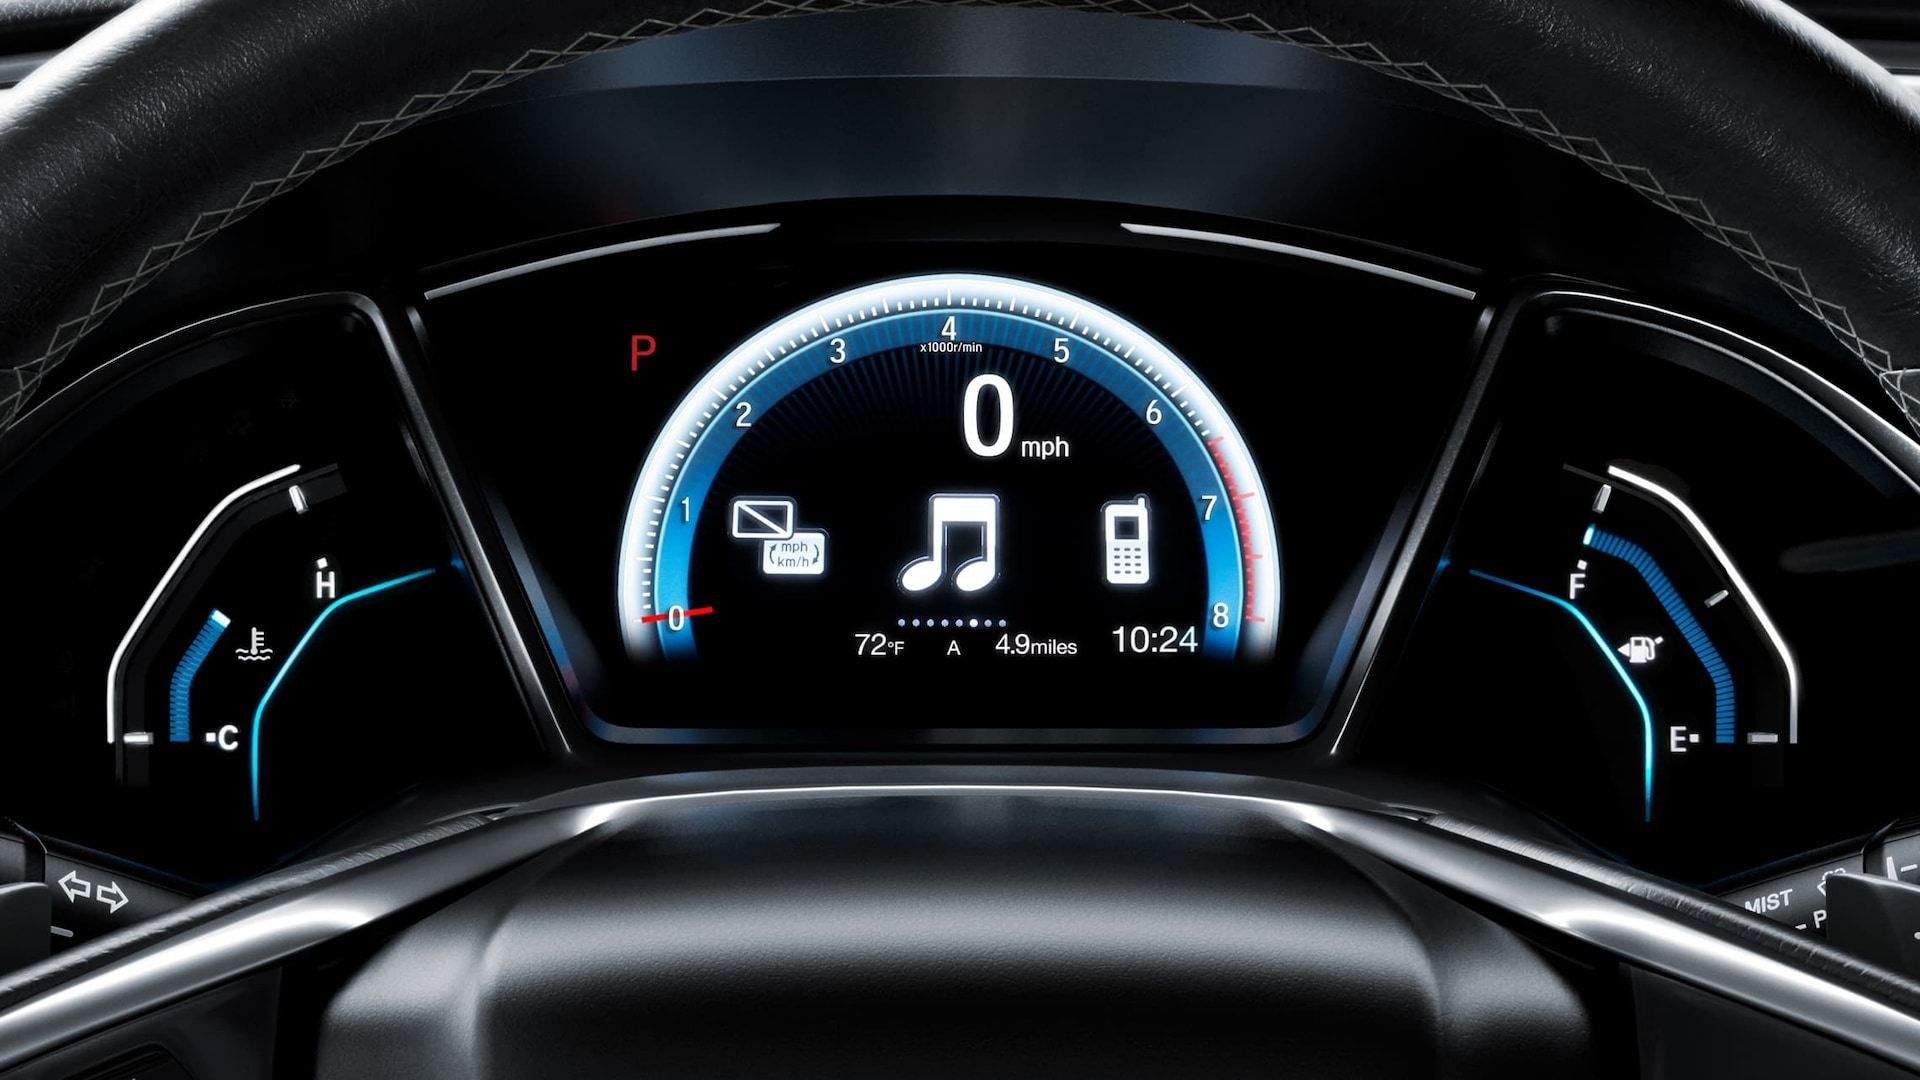 Driver Information Interface detail in the 2020 Honda Civic Touring Sedan.